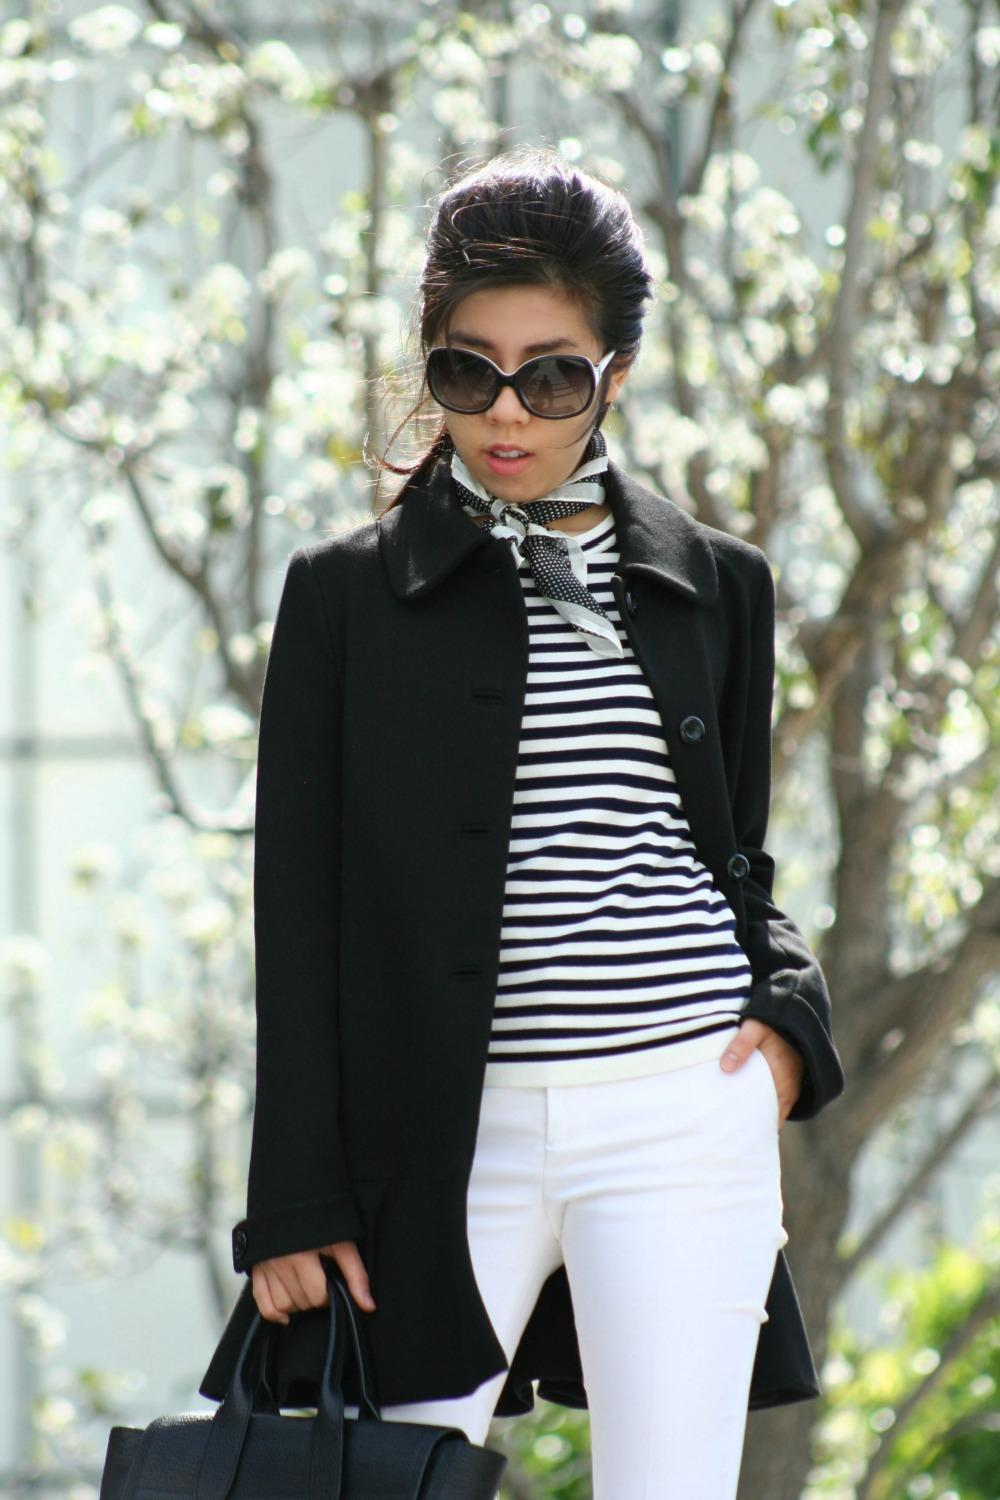 What to Wear with a Polka Dot Silk Scarf - Casual French Girl Look - Parisian Style - Classic Striped Tee with White Pants - Adrienne Nguyen - Invictus